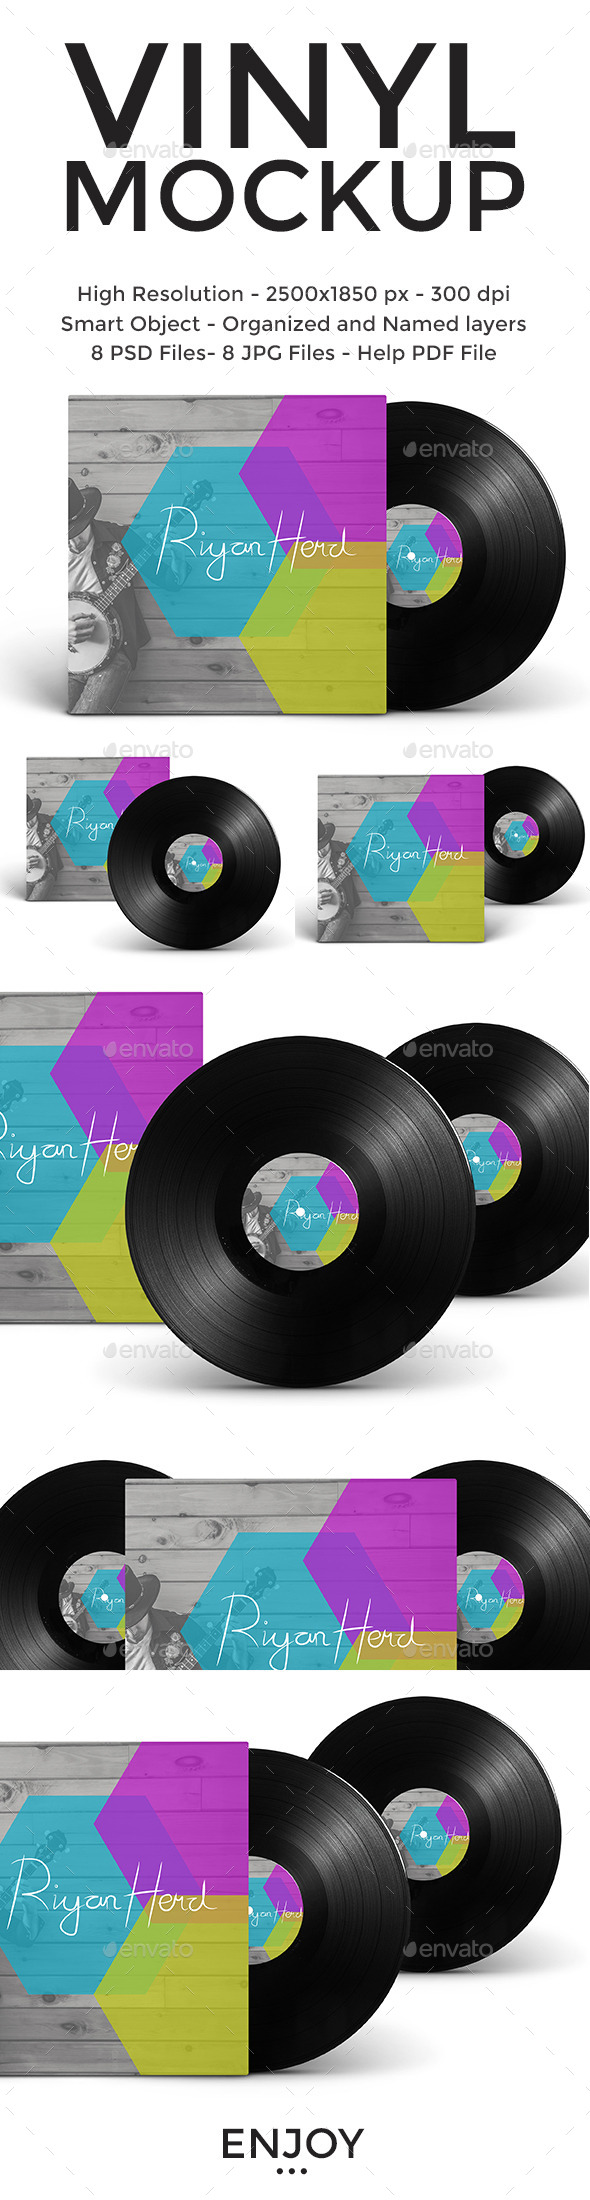 GraphicRiver Vinyl and Cover Mockup 11342338